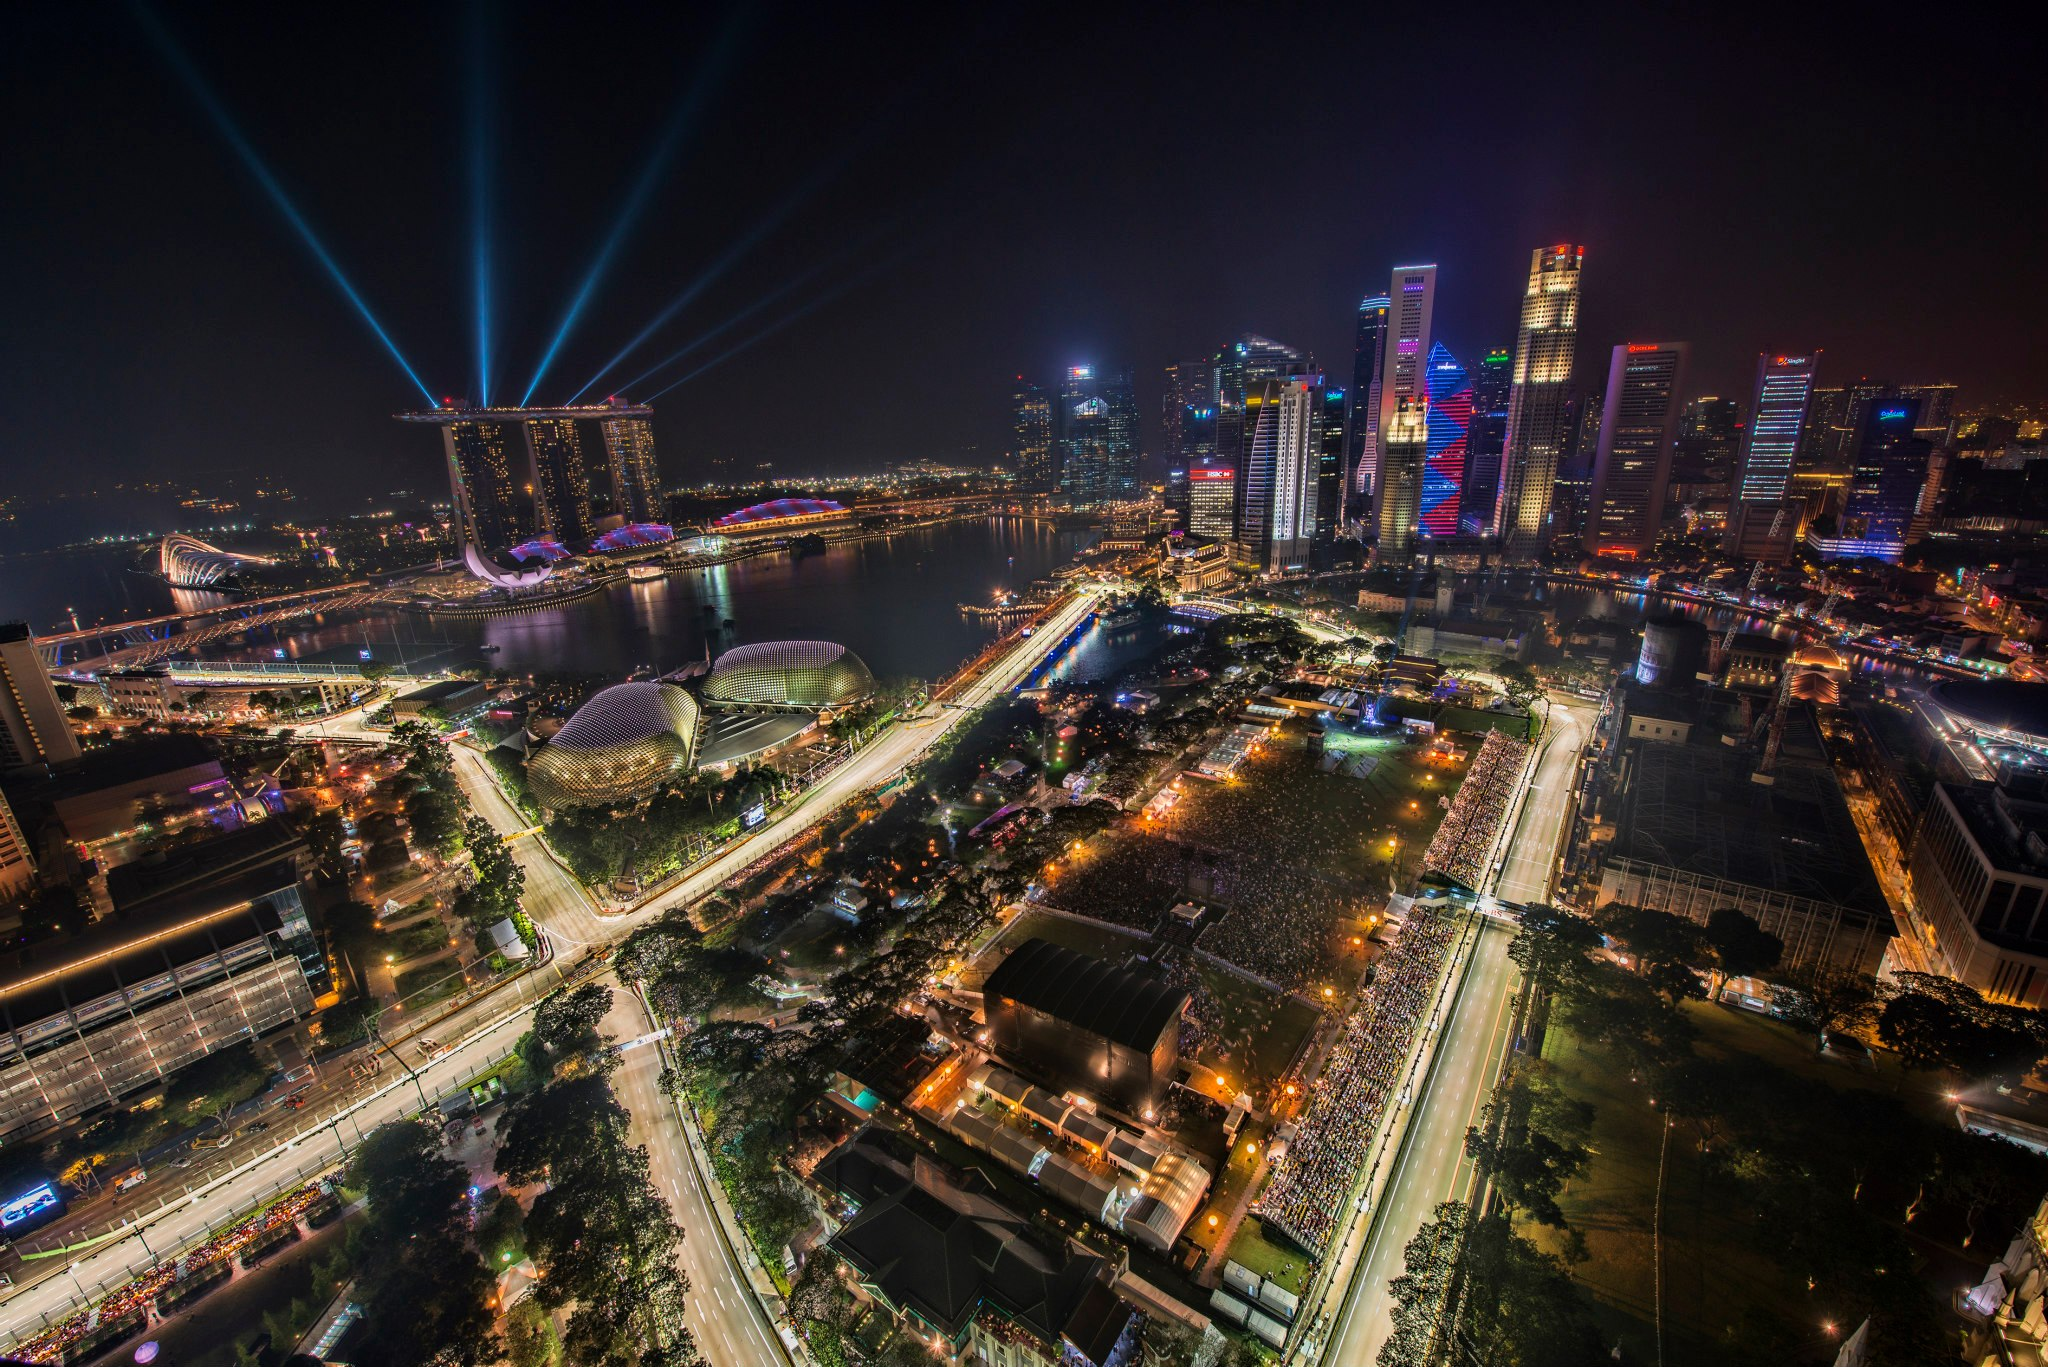 Singapore City is the most expensive city in the world